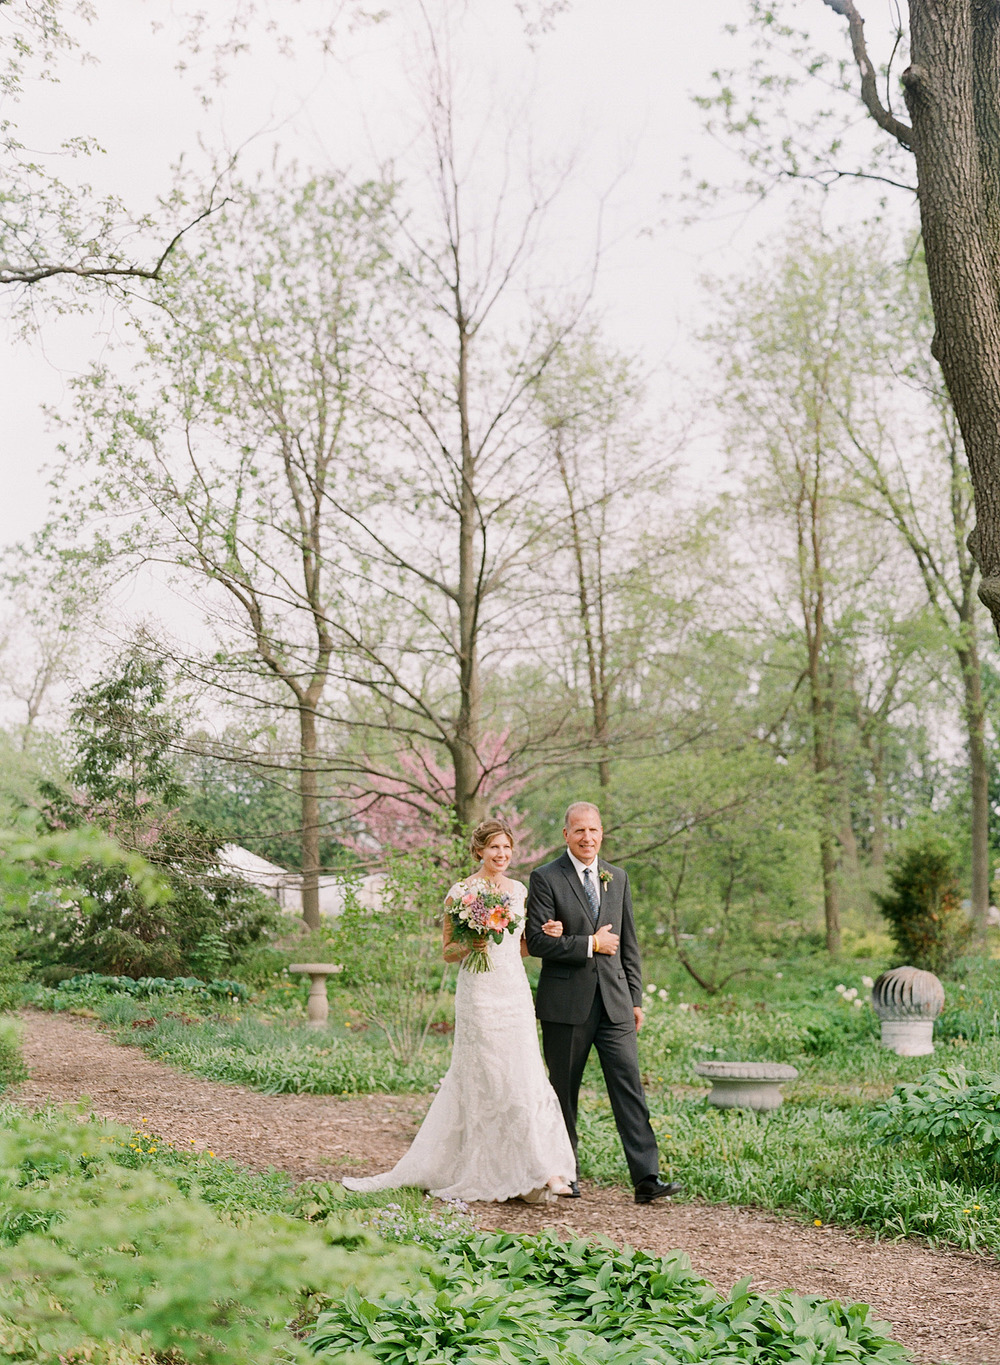 father walks bride down the aisle at this springtime wedding at Northwind Perennial Garden - a beautiful wisconsin wedding venue - while Destination wedding photographer Lexia Frank Photographs this wedding on film